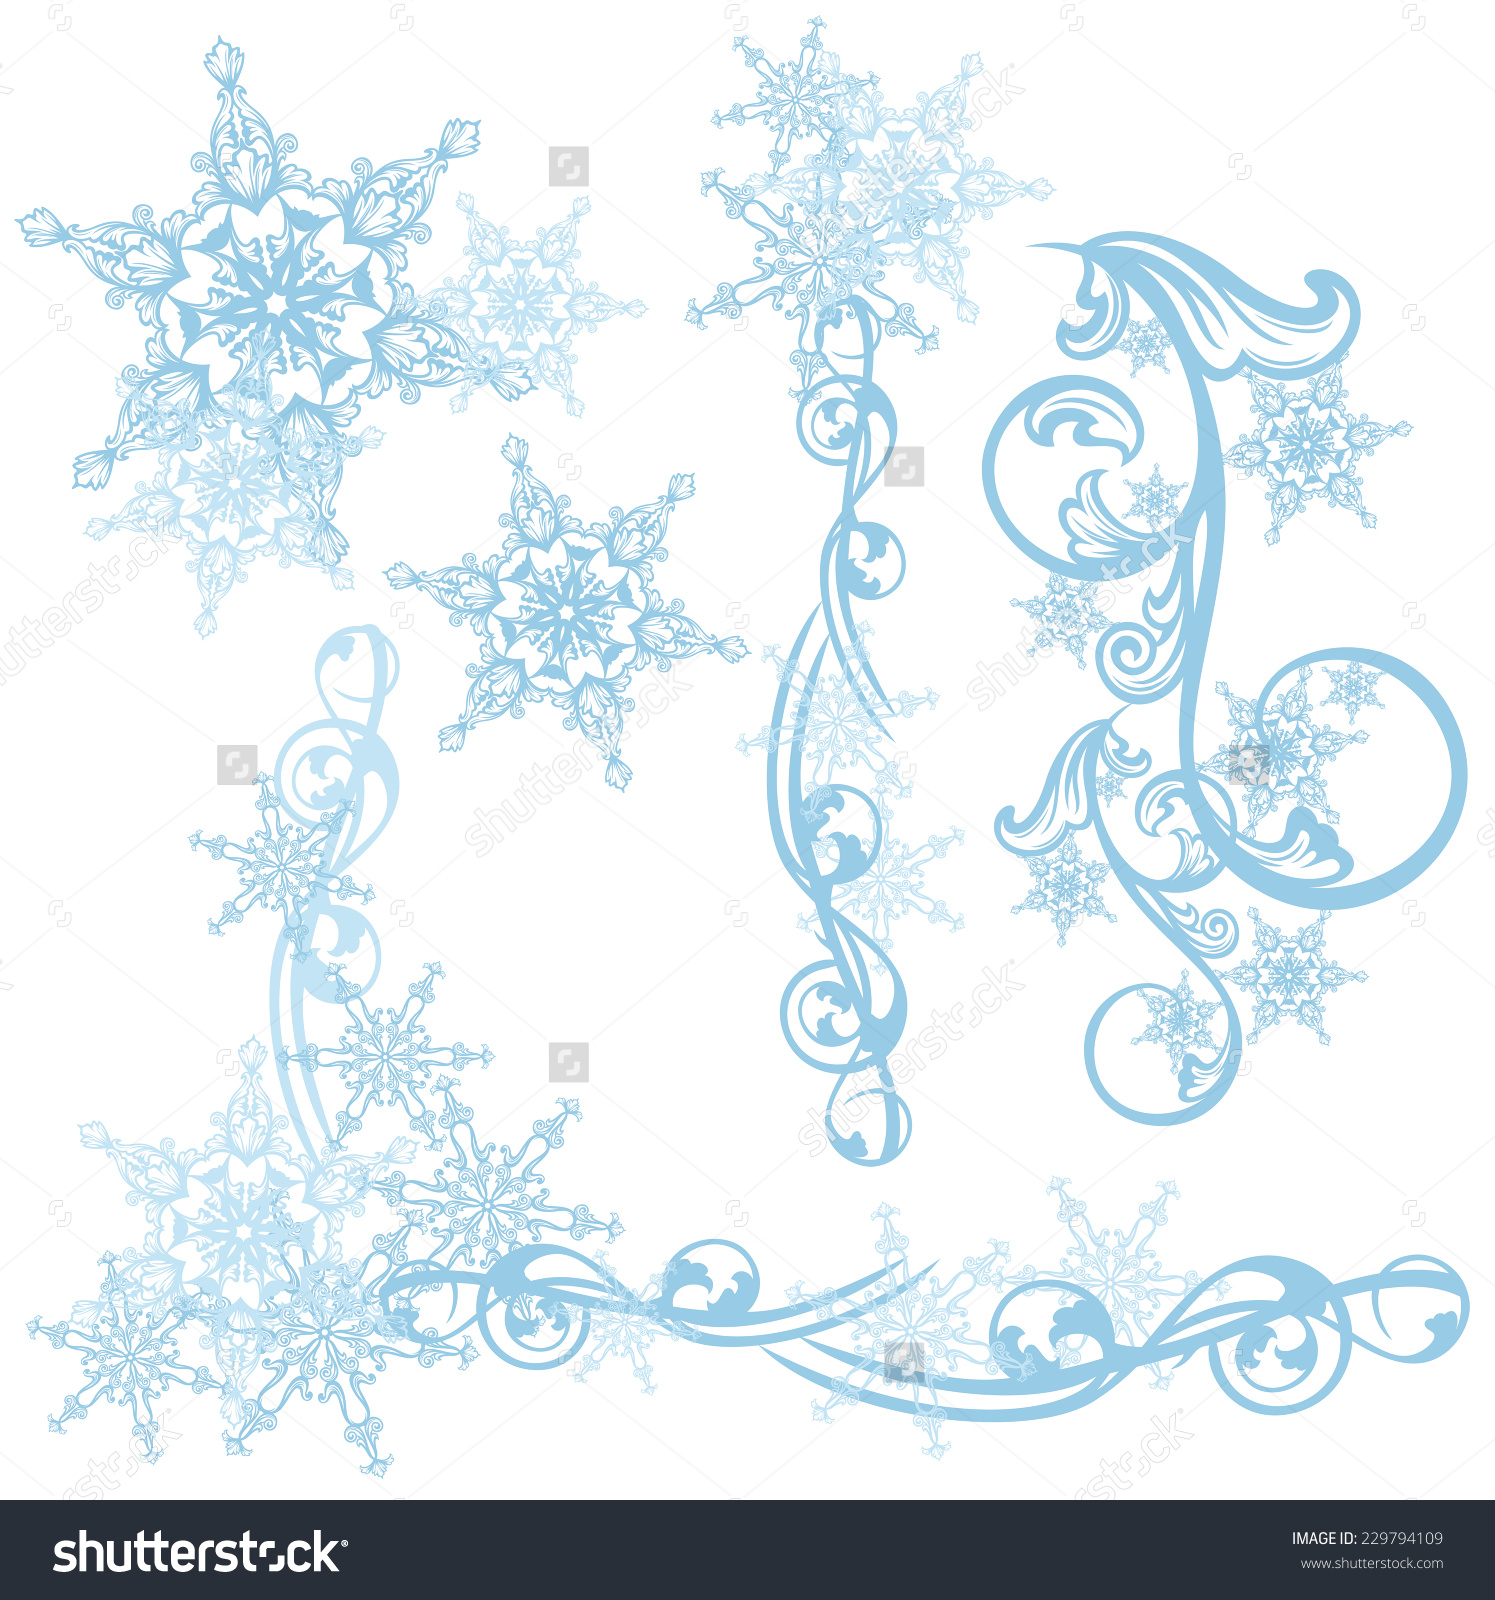 Snowflakes Decorative Vector Design Elements.